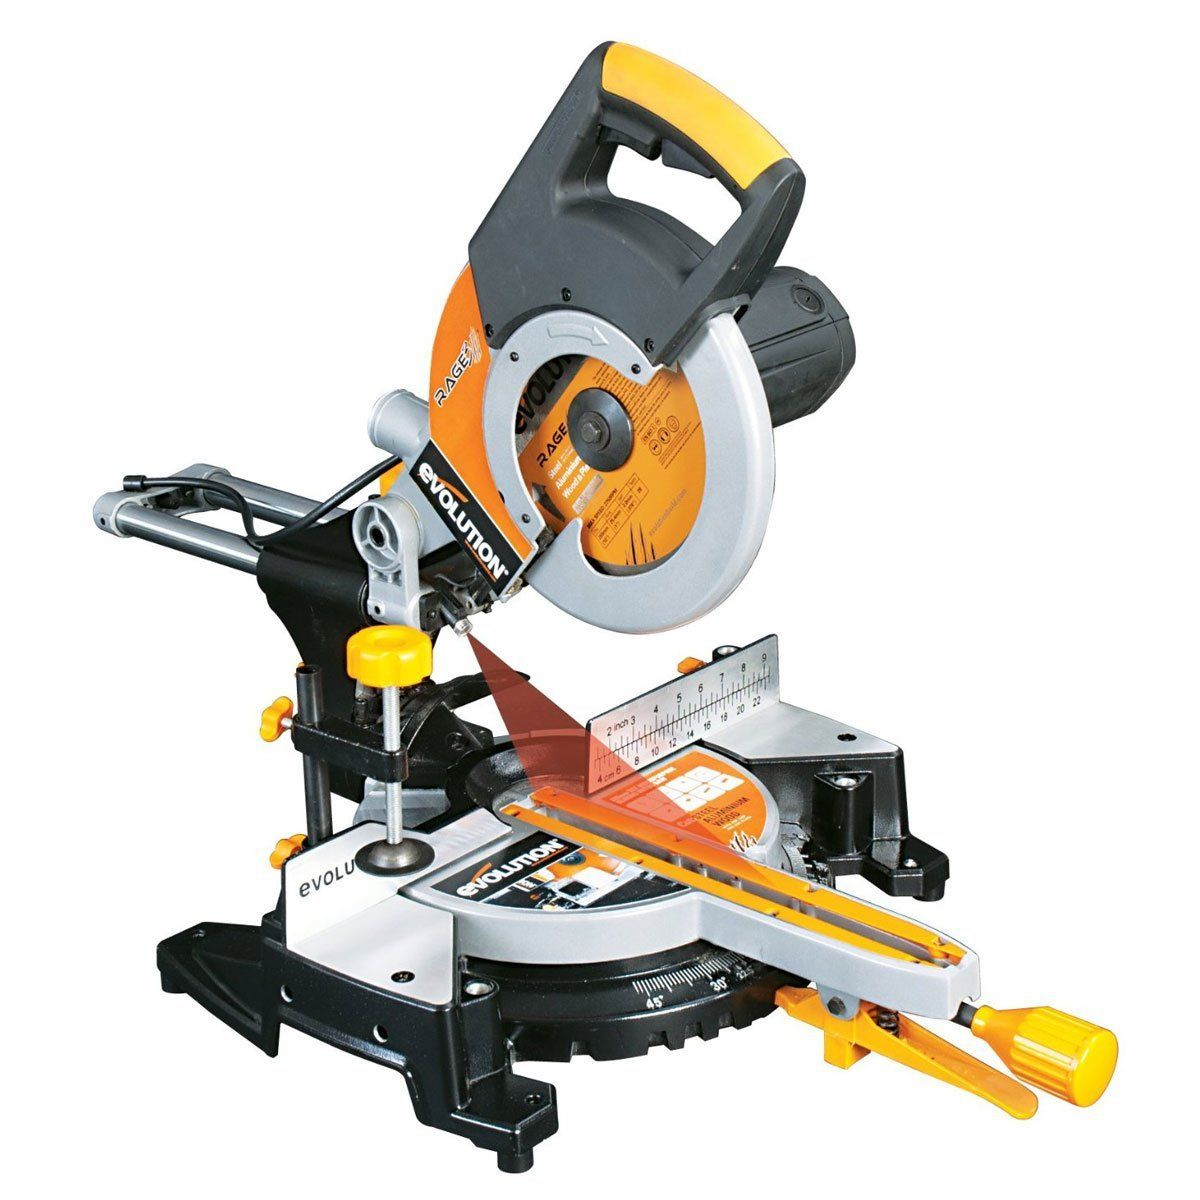 Evolution Rage3 Multipurpose Sliding Mitre Saw 255 mm - 230 V